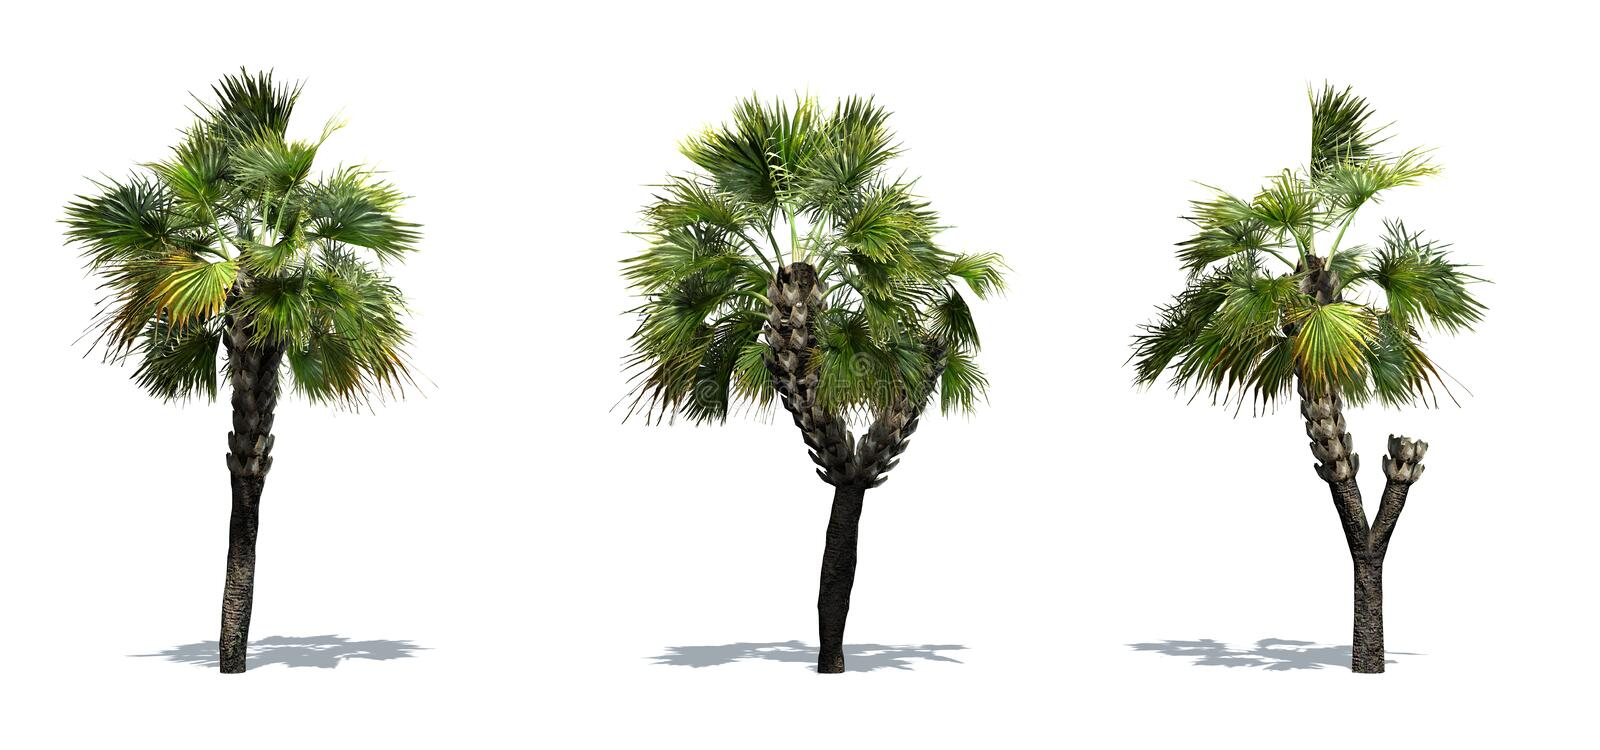 Set of Palmetto Palm trees with shadow on the floor. Isolated on white background royalty free illustration